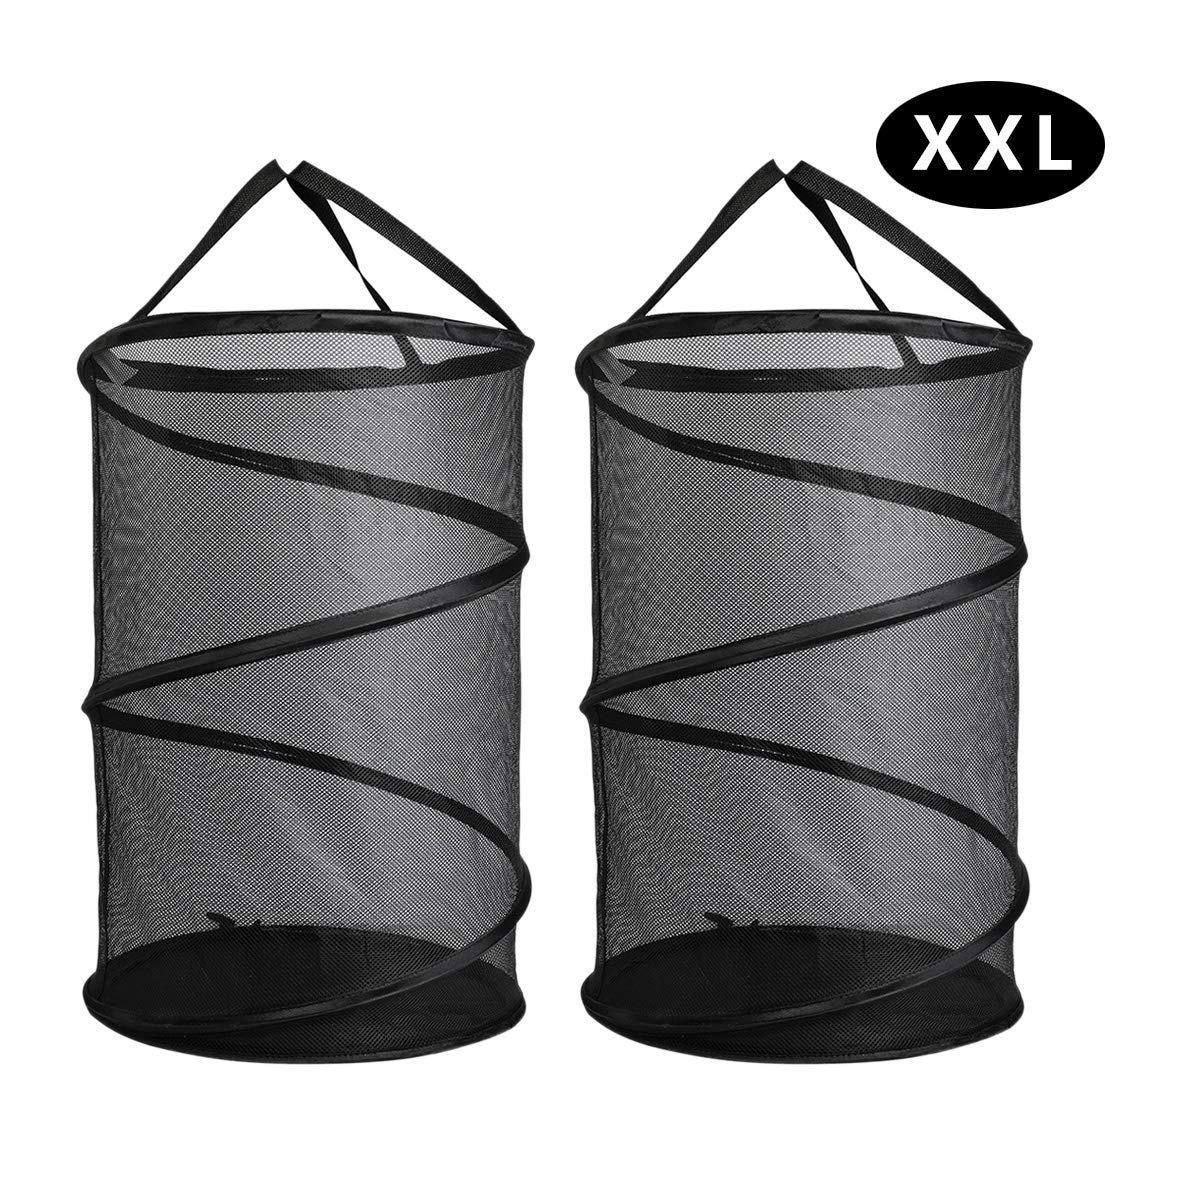 ganamoda Collapsible Spiral Pop-up Mesh Hamper - Thicken to Avert Fissuration,Reinforced Carry Handles and Nylon Bottomand,for The Occasions of Home,Laundry Room,Travel,ect.Black 2PACK